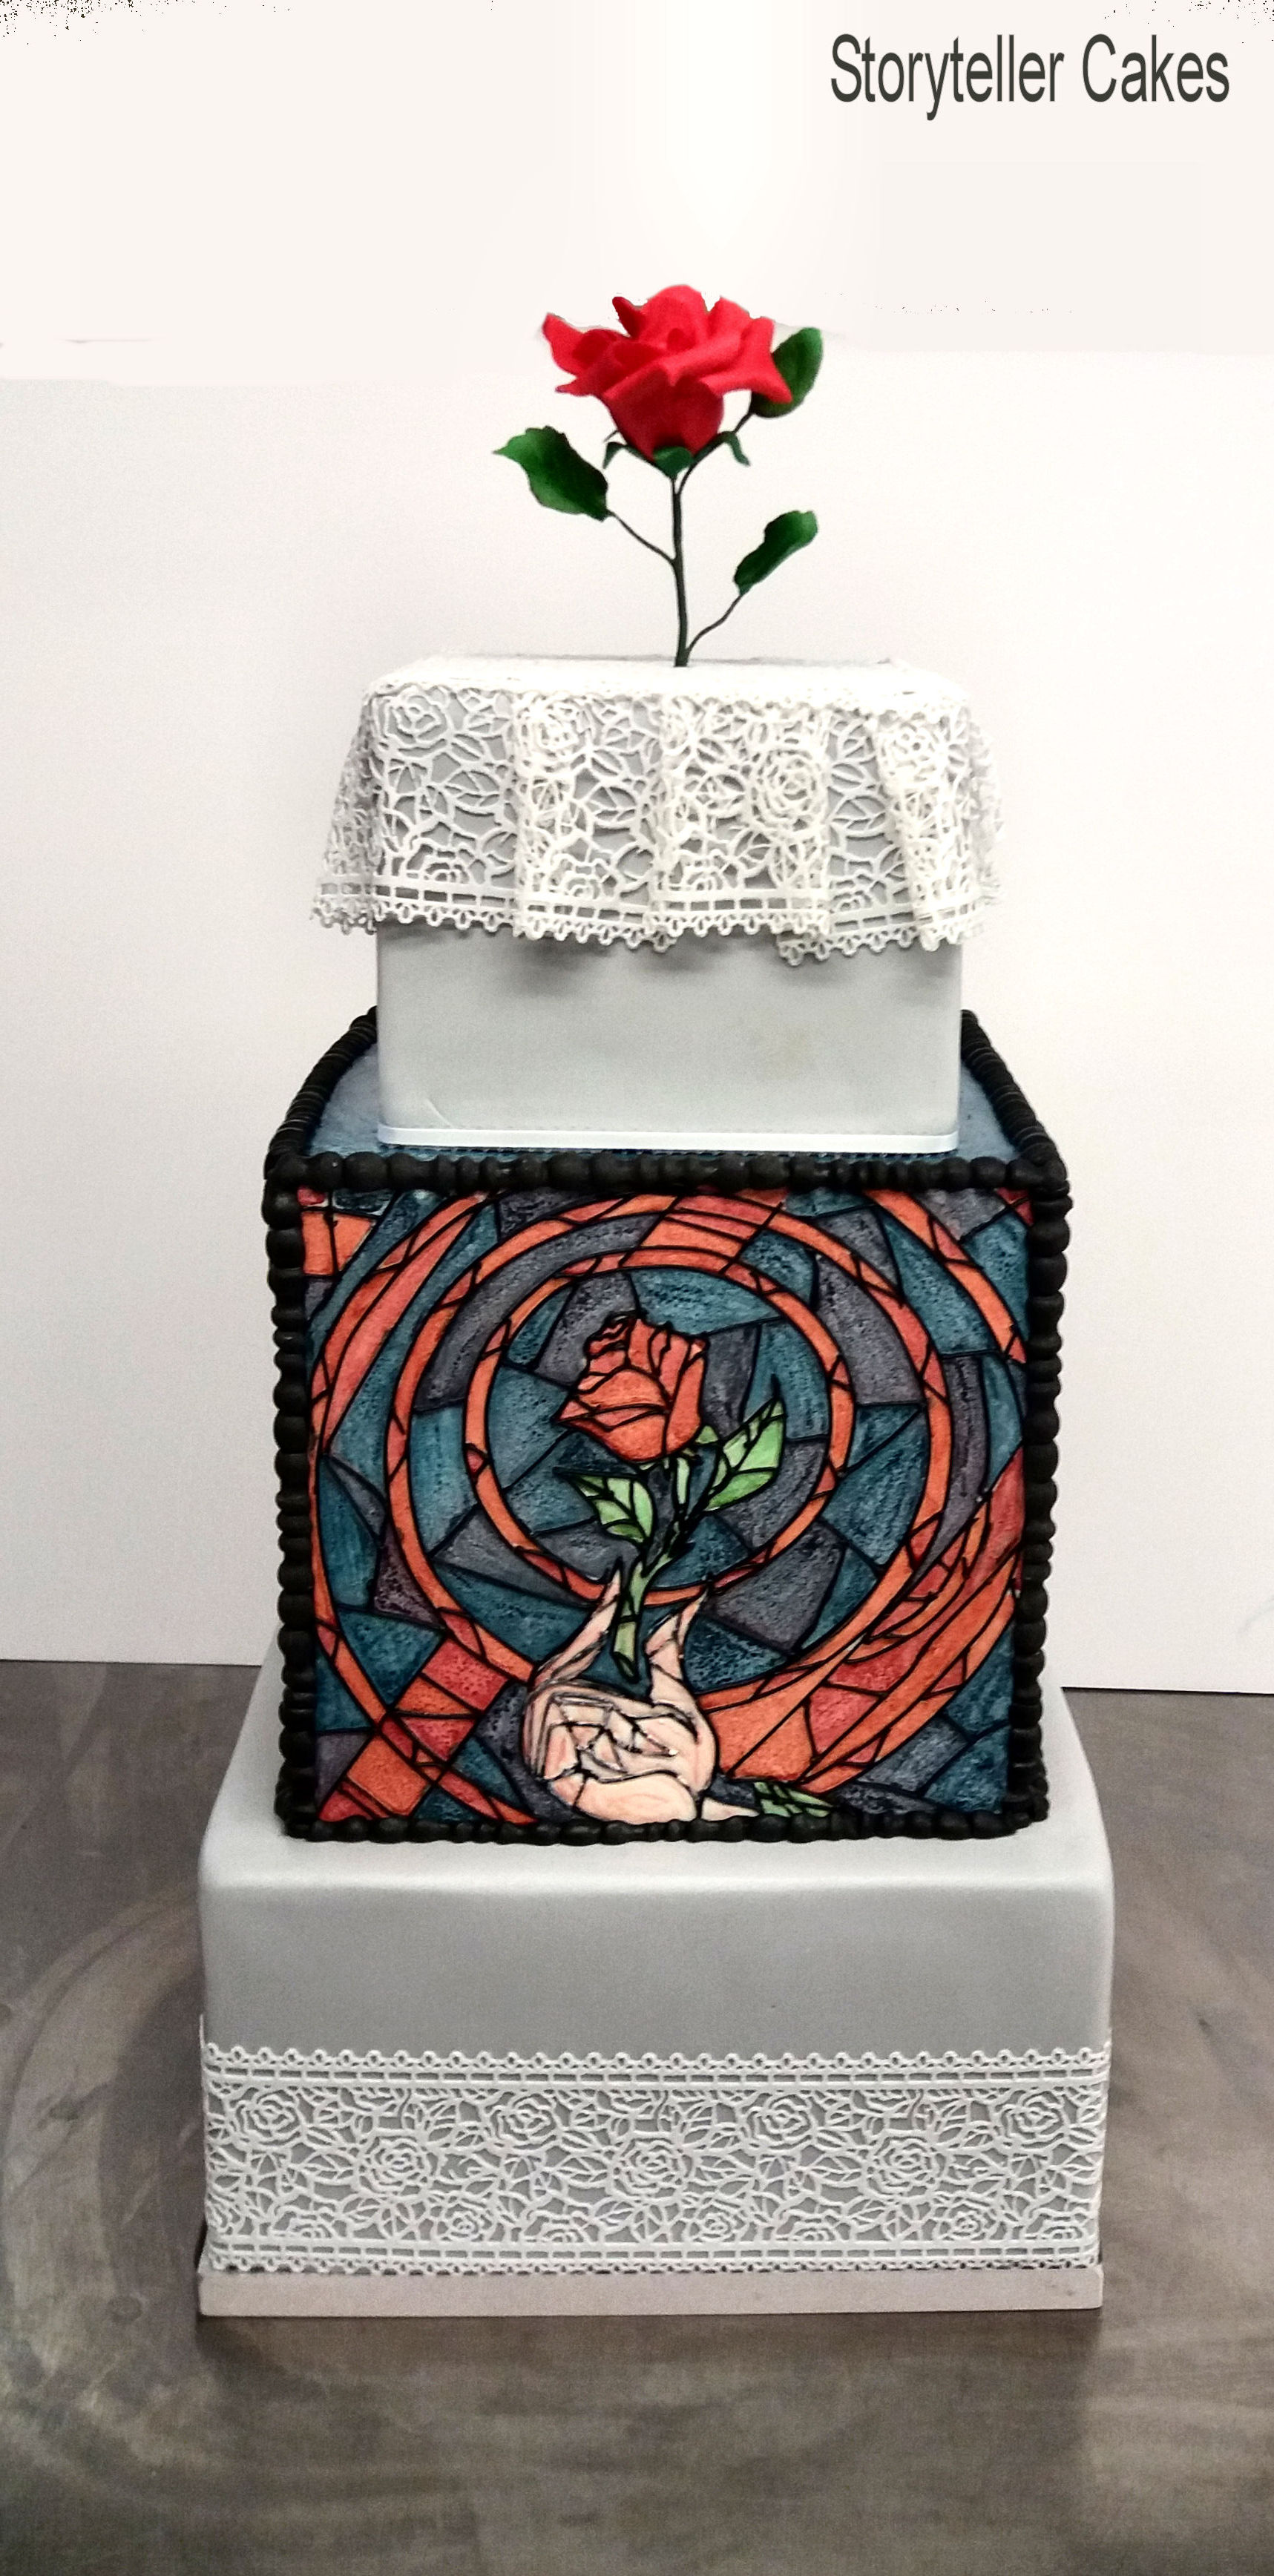 Stain Glass Beauty & The Beast Wedding Cake